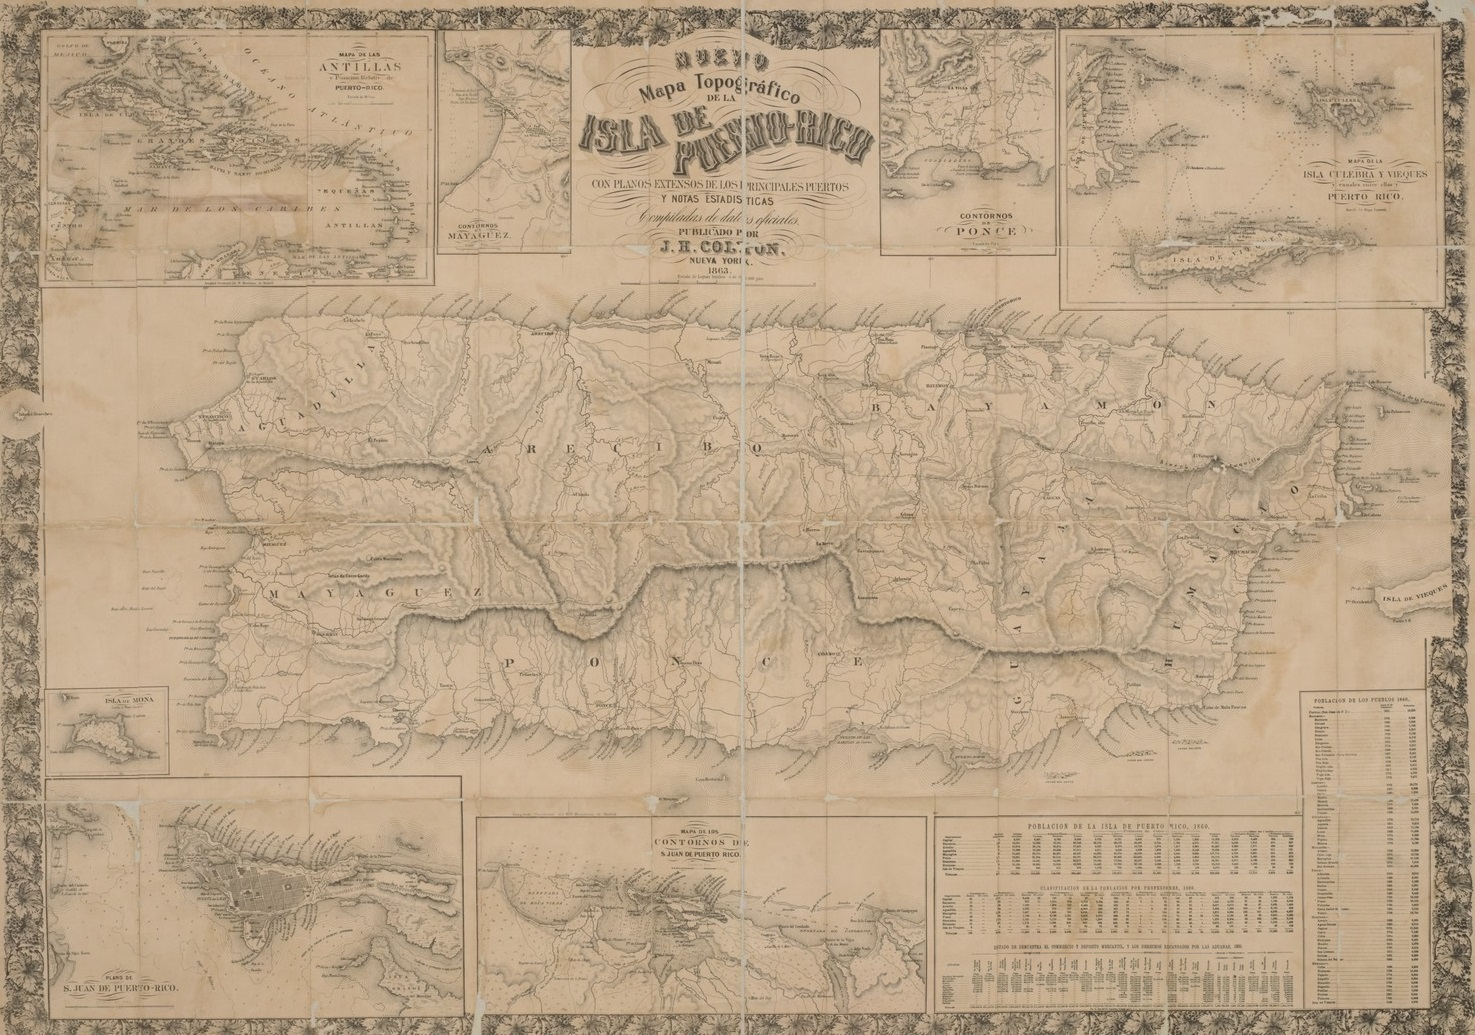 Colton's map of Puerto Rico, 1863